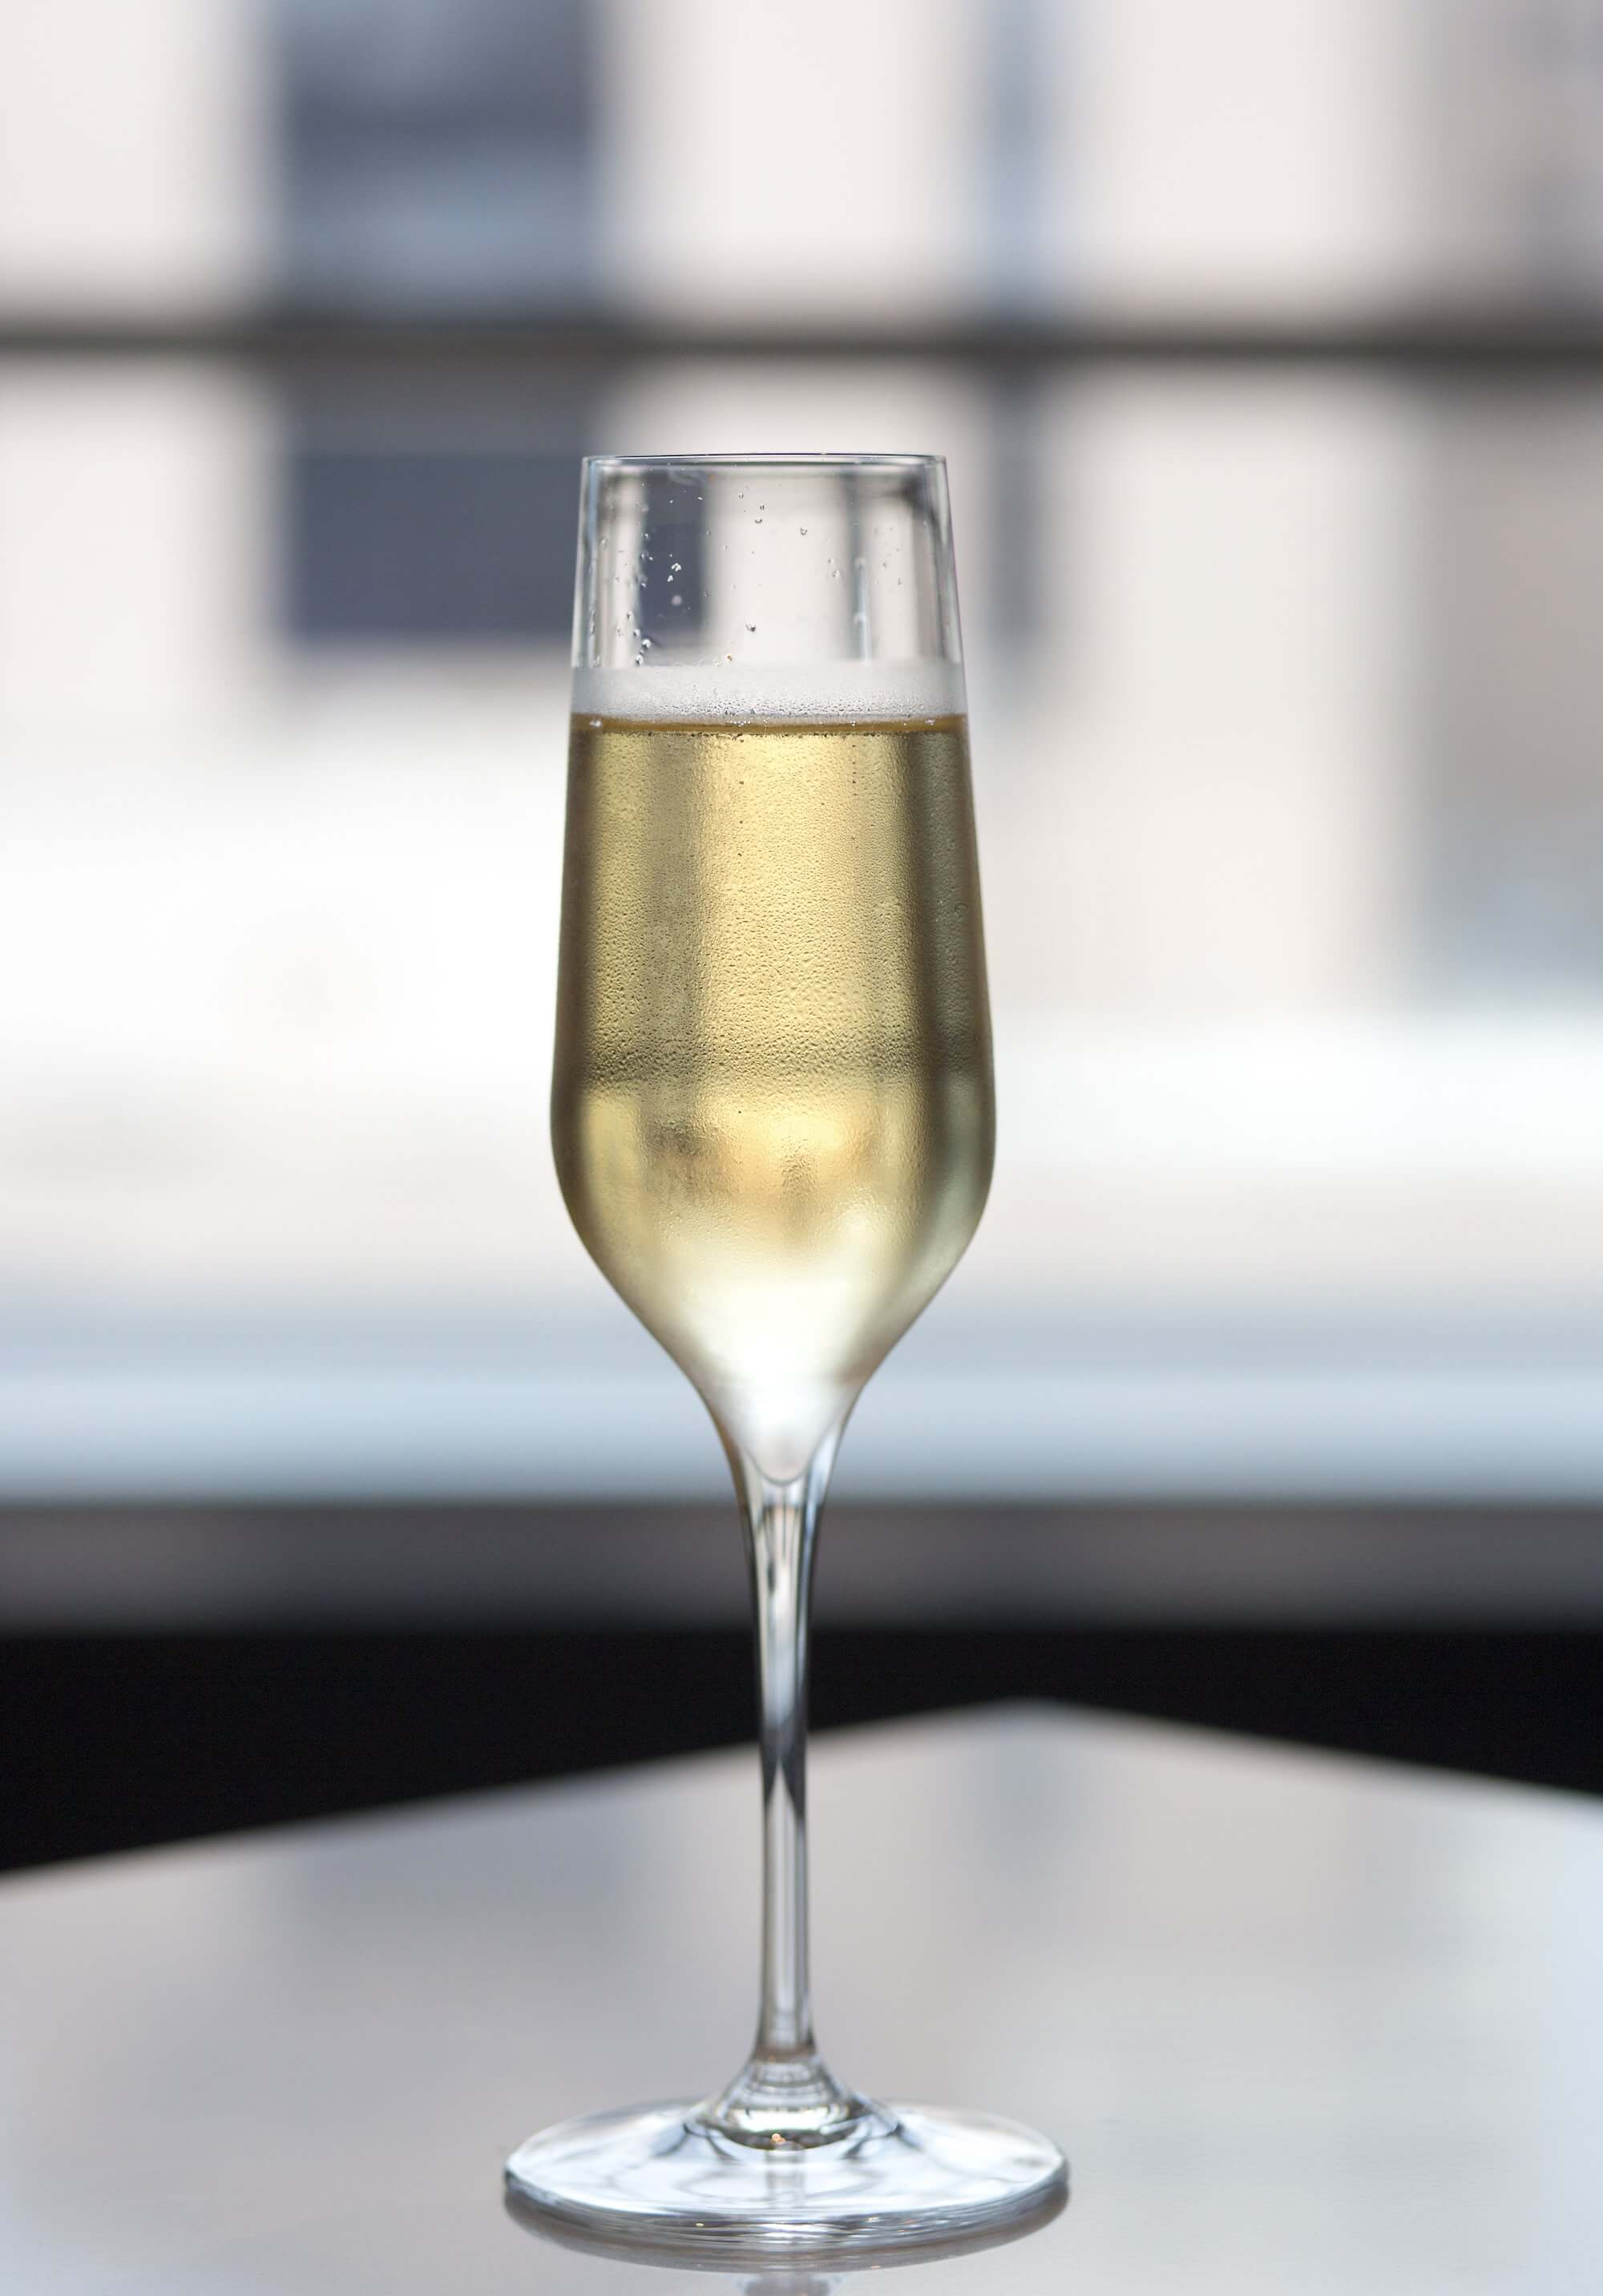 A glass of champagne averages 84 calories